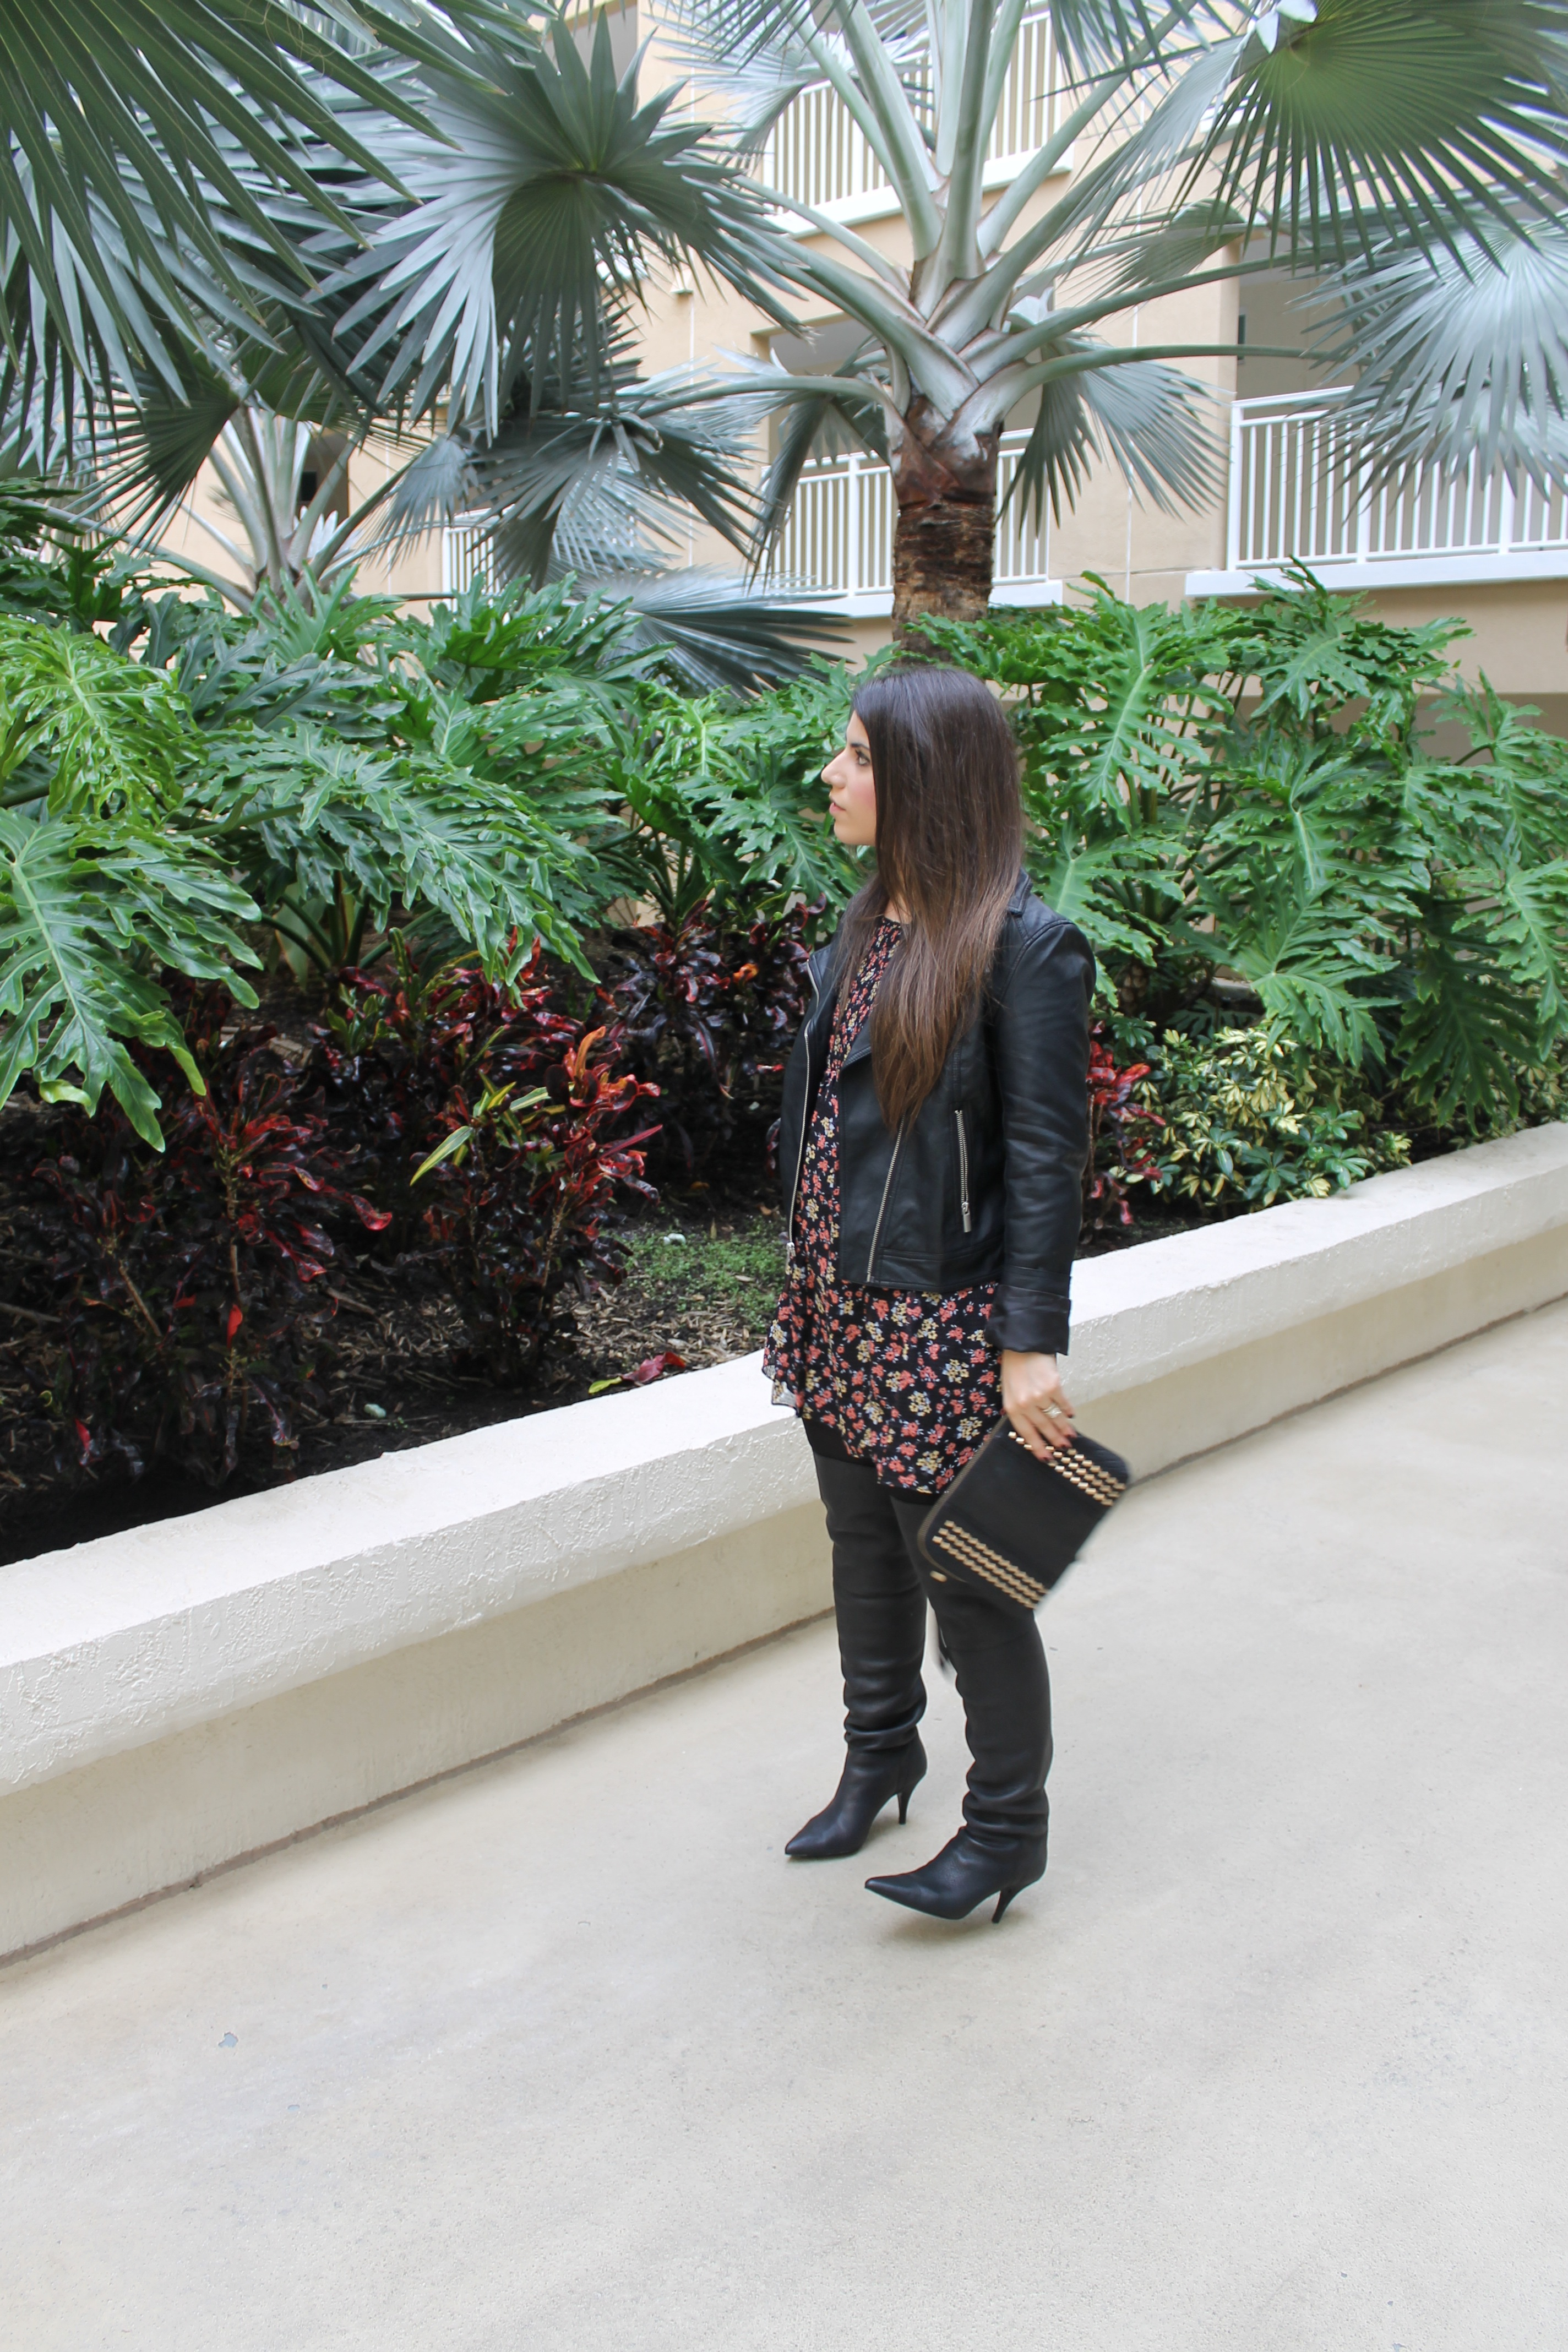 t.j.maxx maxxinista outfit leather jacket free people tunic dress studded clutch gold rings fall lexi _ glitterinc.com